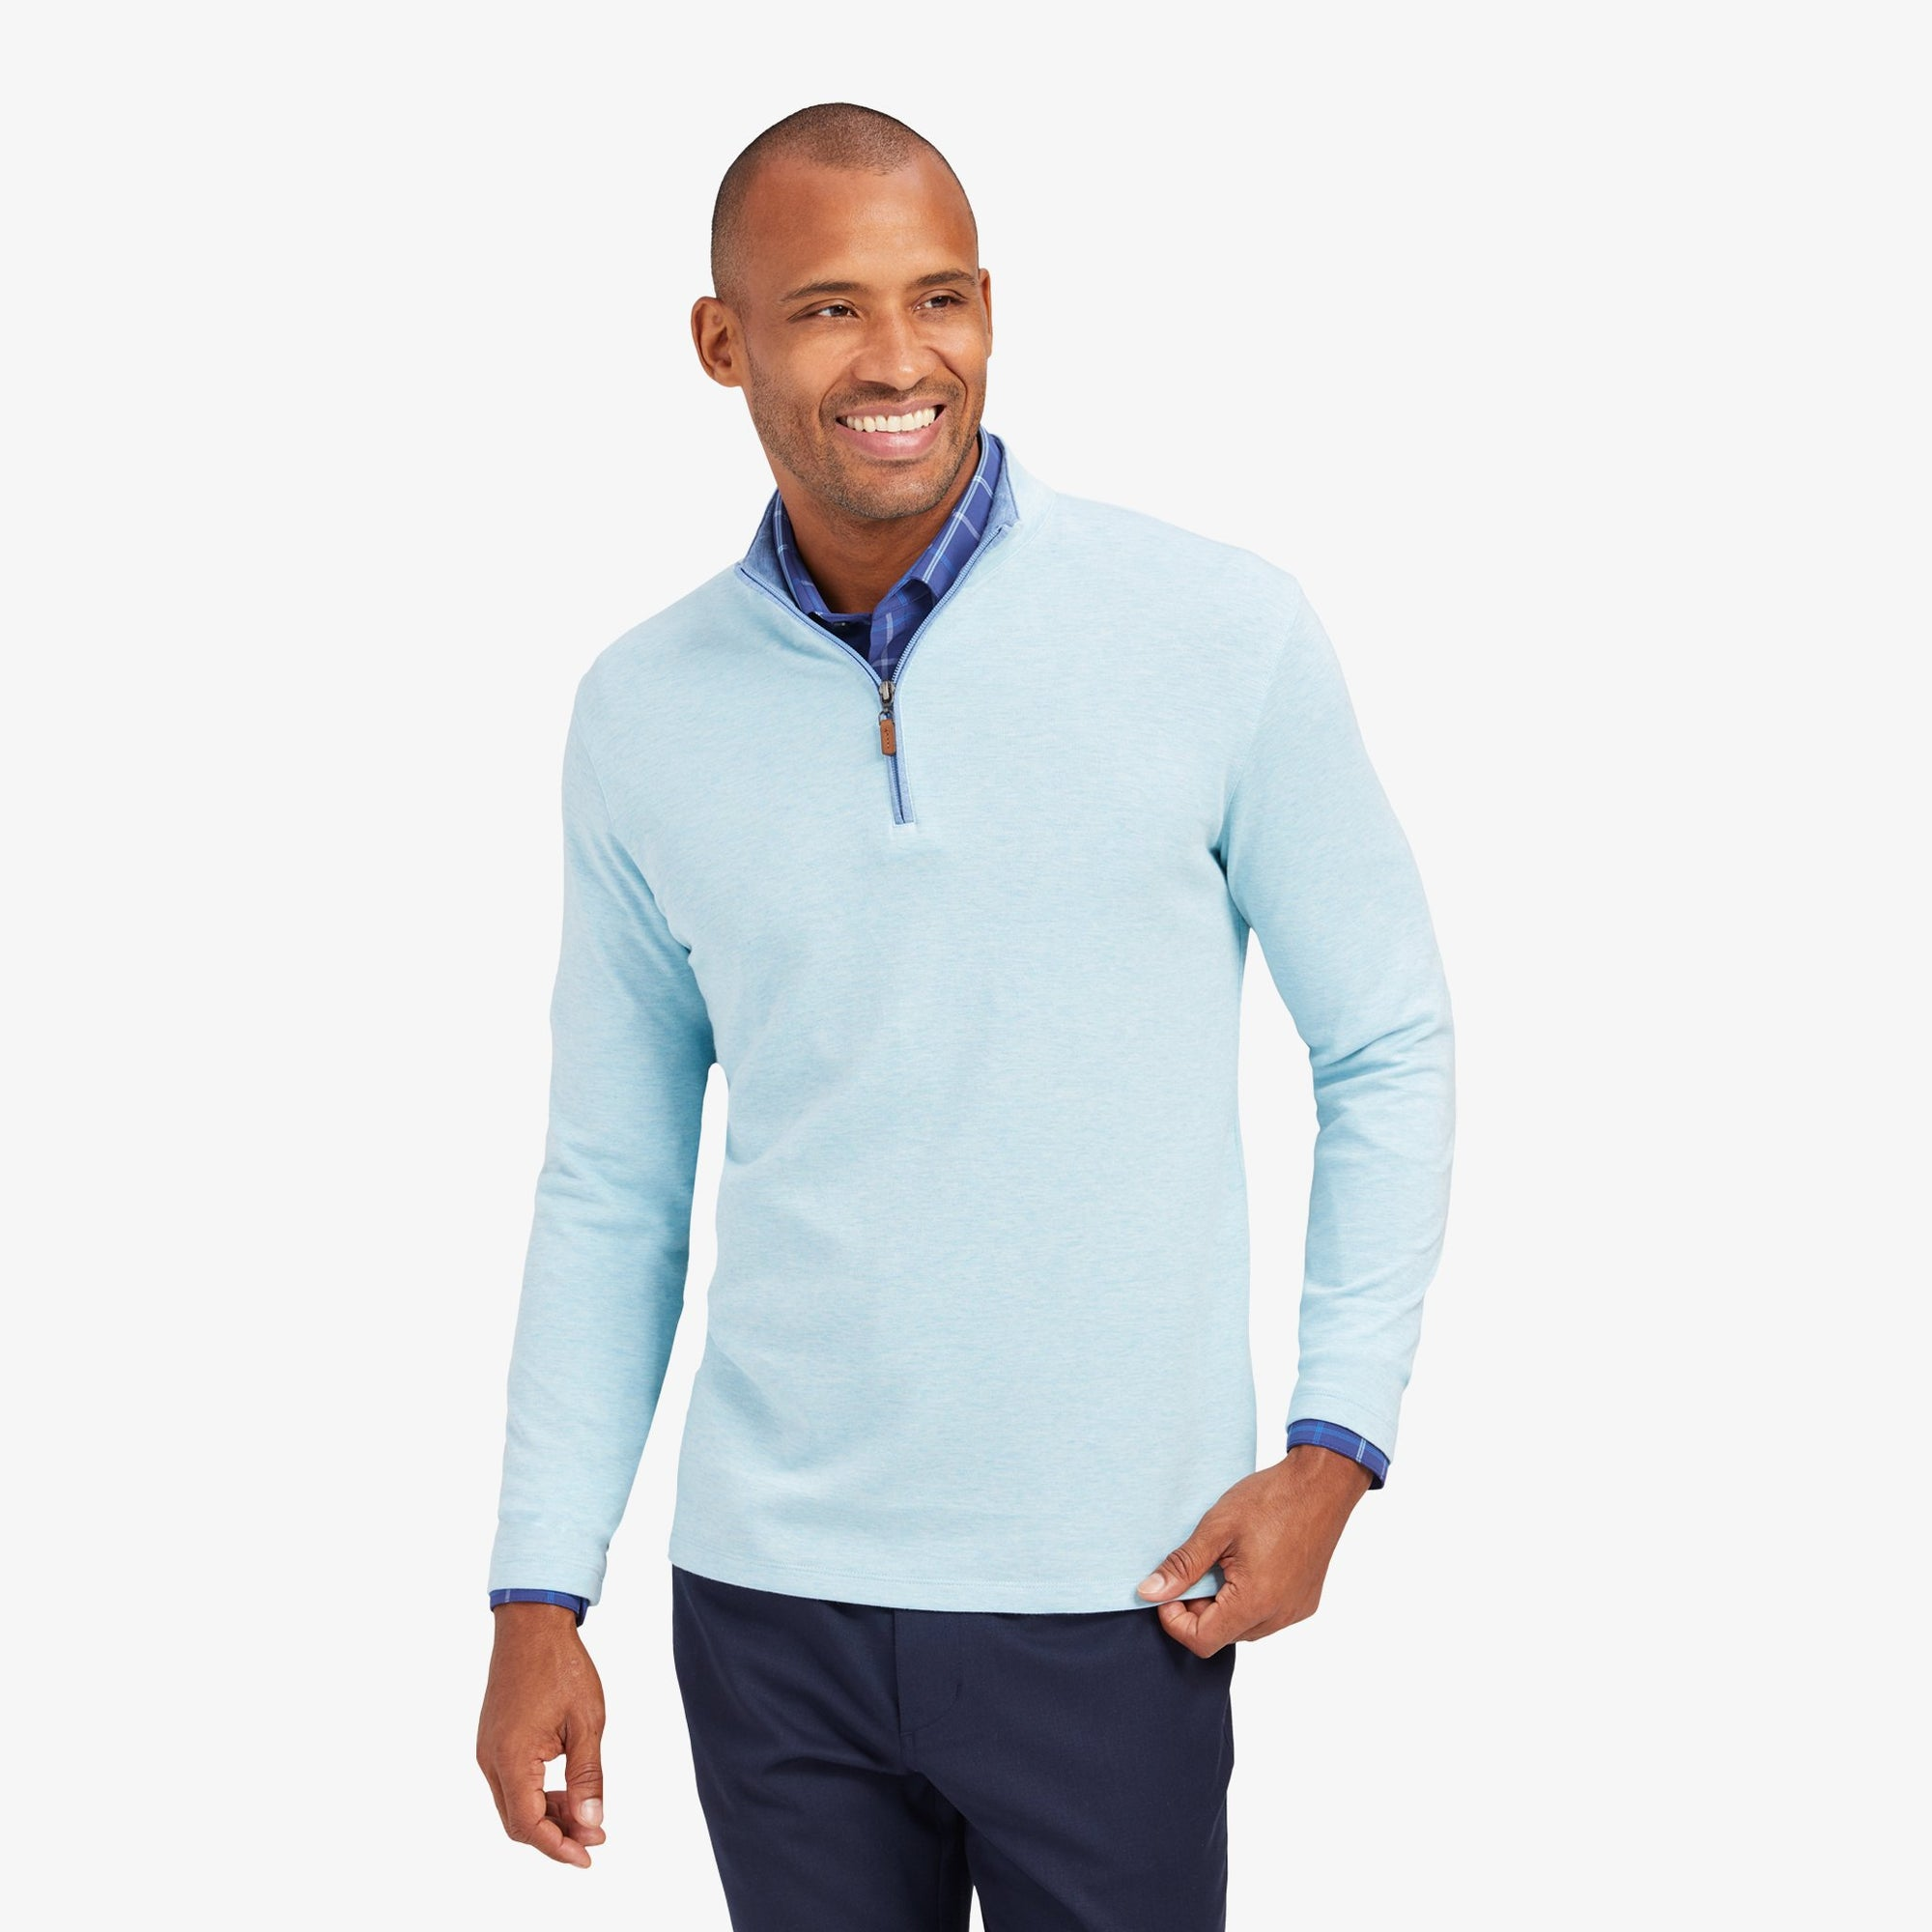 Mizzen+Main Fairway Qtr Zip Sweater FWY-F20-44007